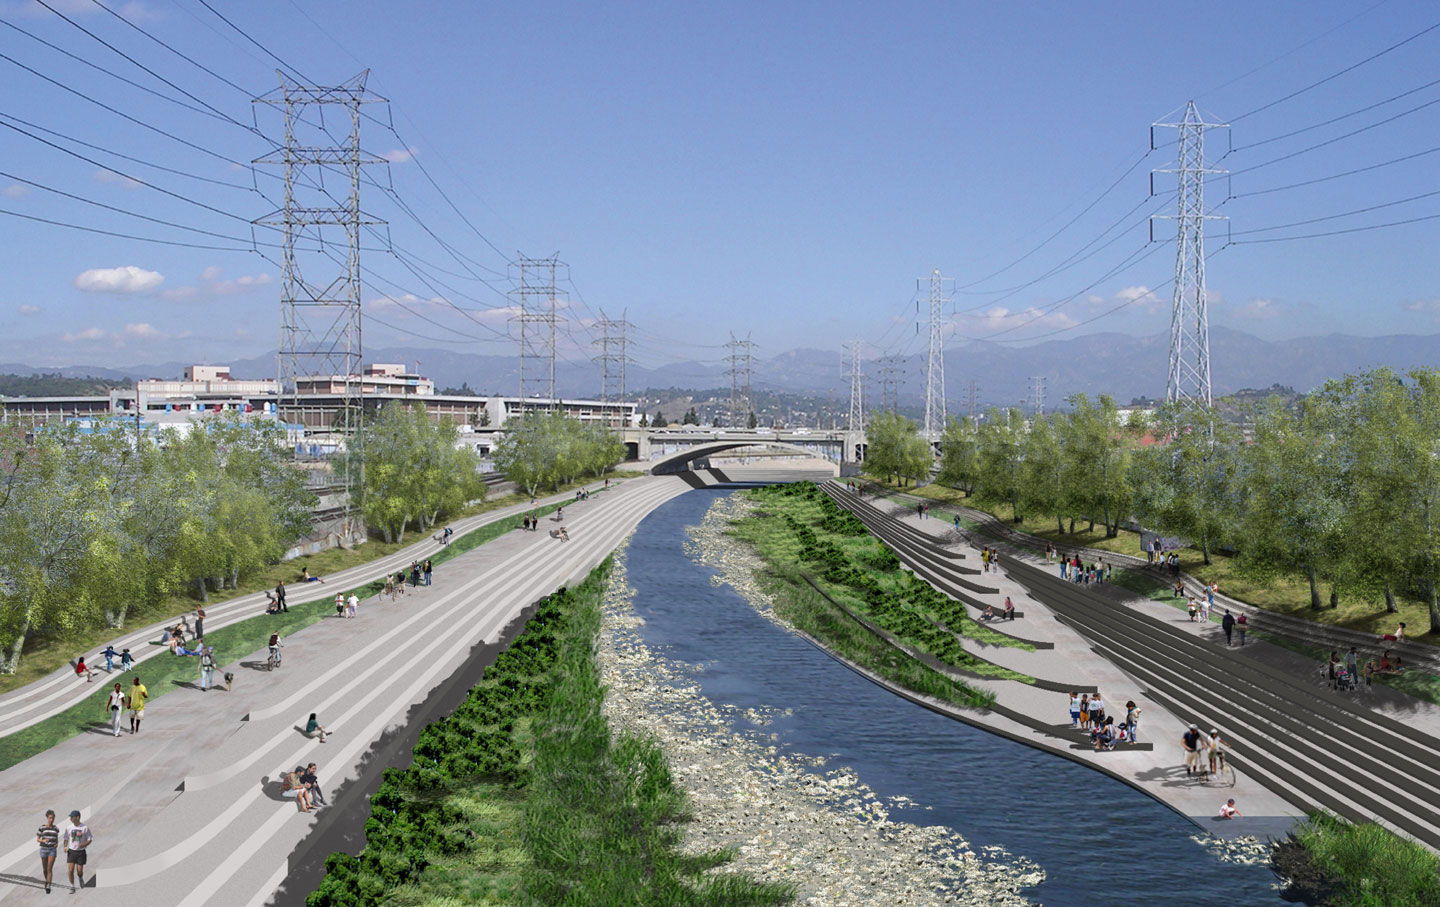 Gehry is currently working on a masterplan for the L.A. River — a concrete channel which flows through L.A. County.